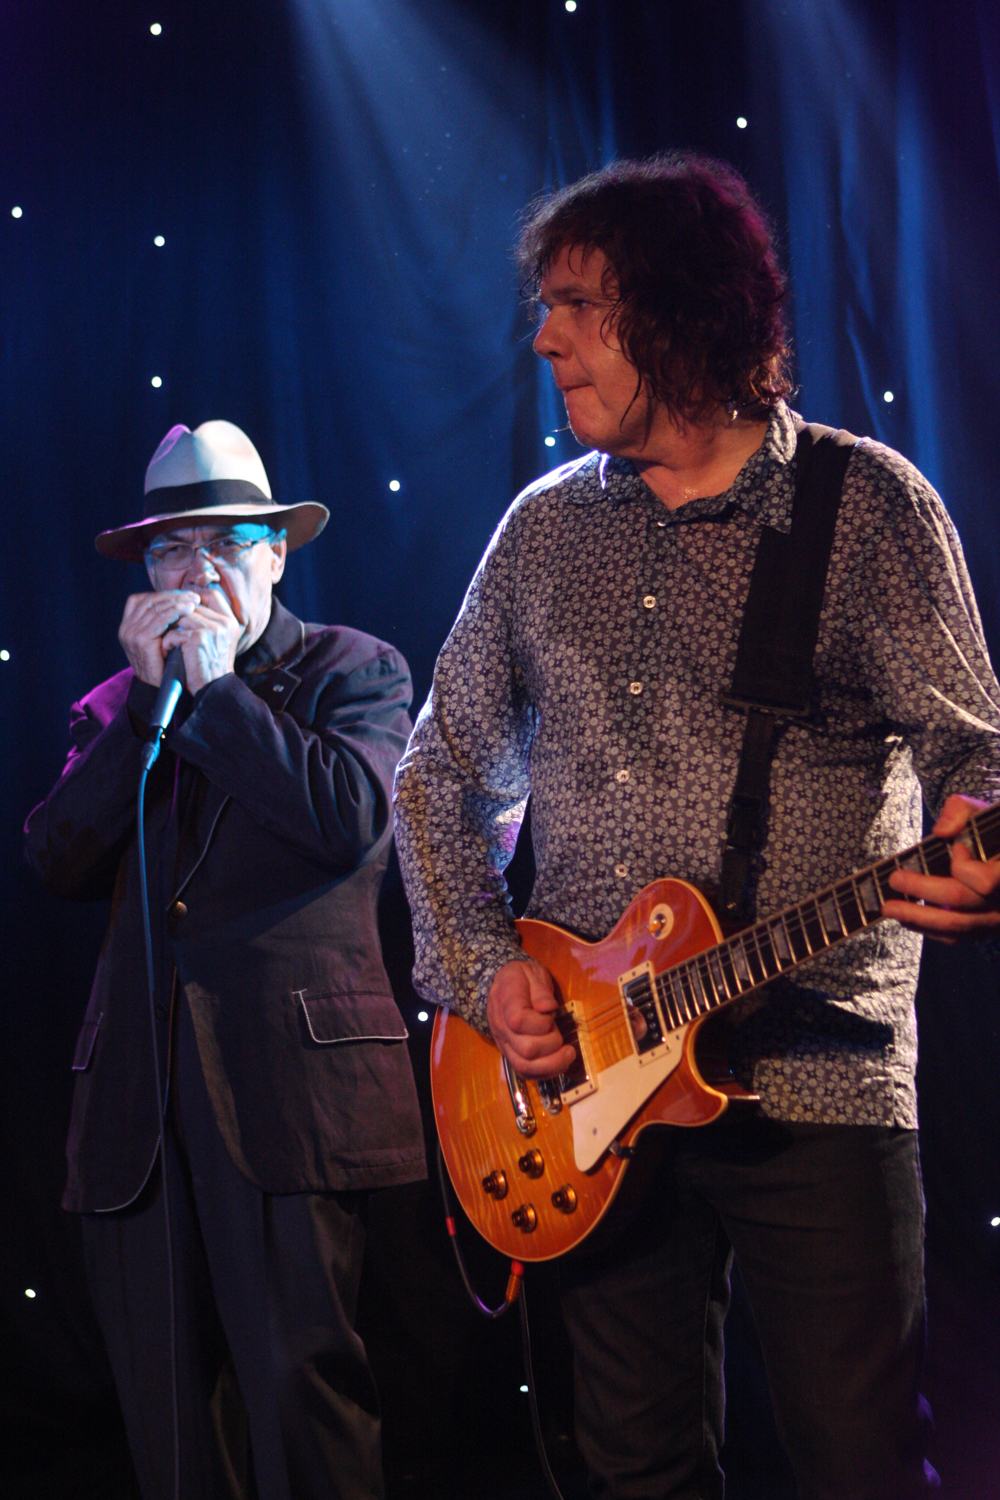 gary-moore-claude-nobs_01_montreux-jazz-festival-2008_IMG_7108.jpg